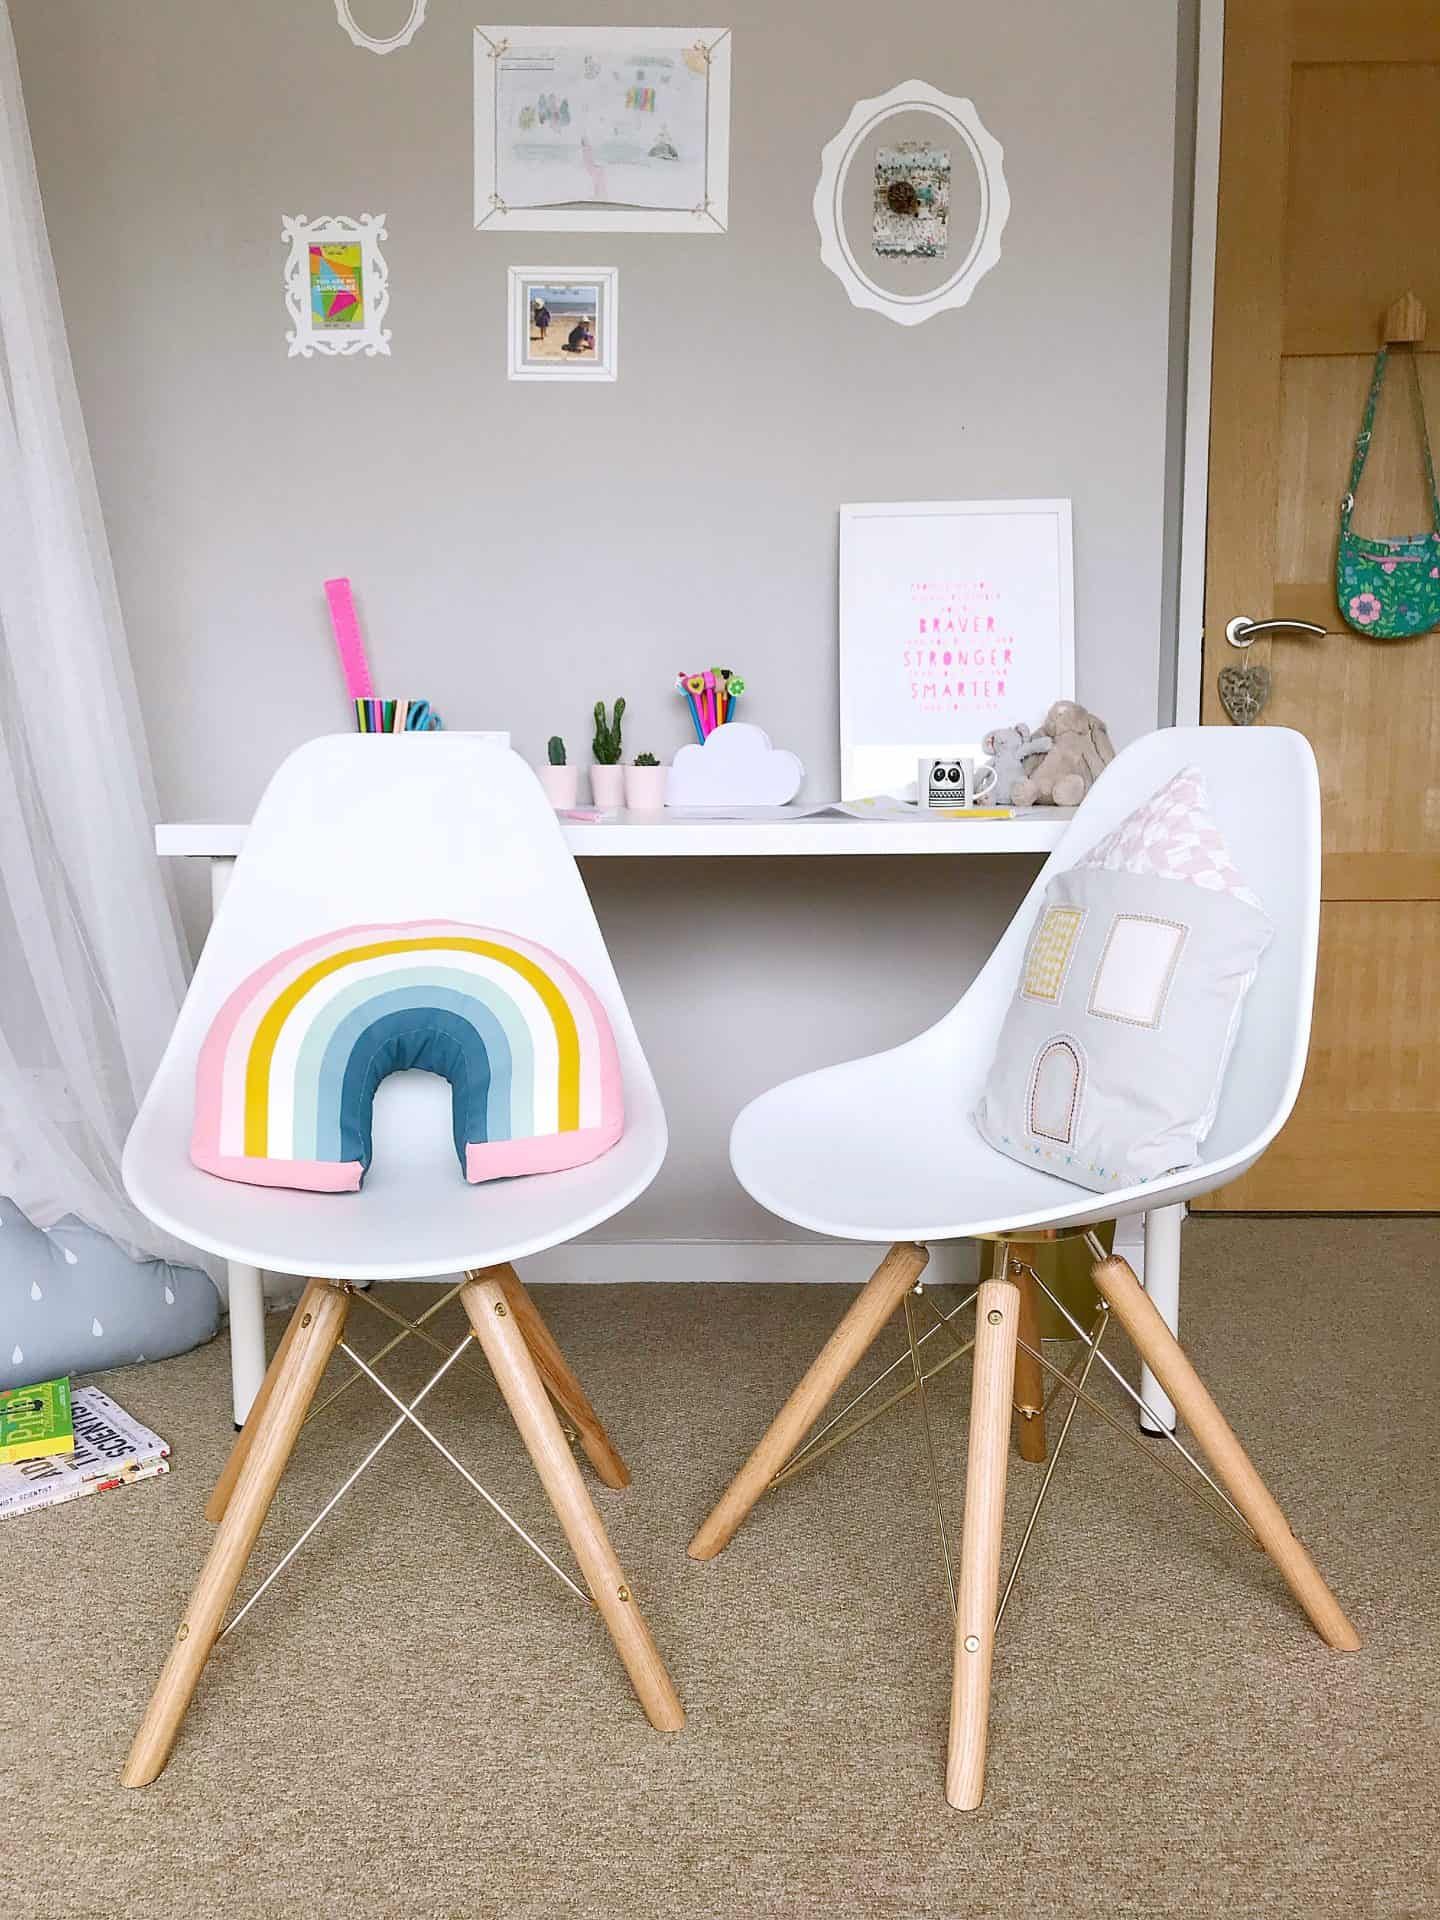 White and gold Cult Furniture Moda Dining Chairs with cushions - the perfect chairs for kids to grow up with